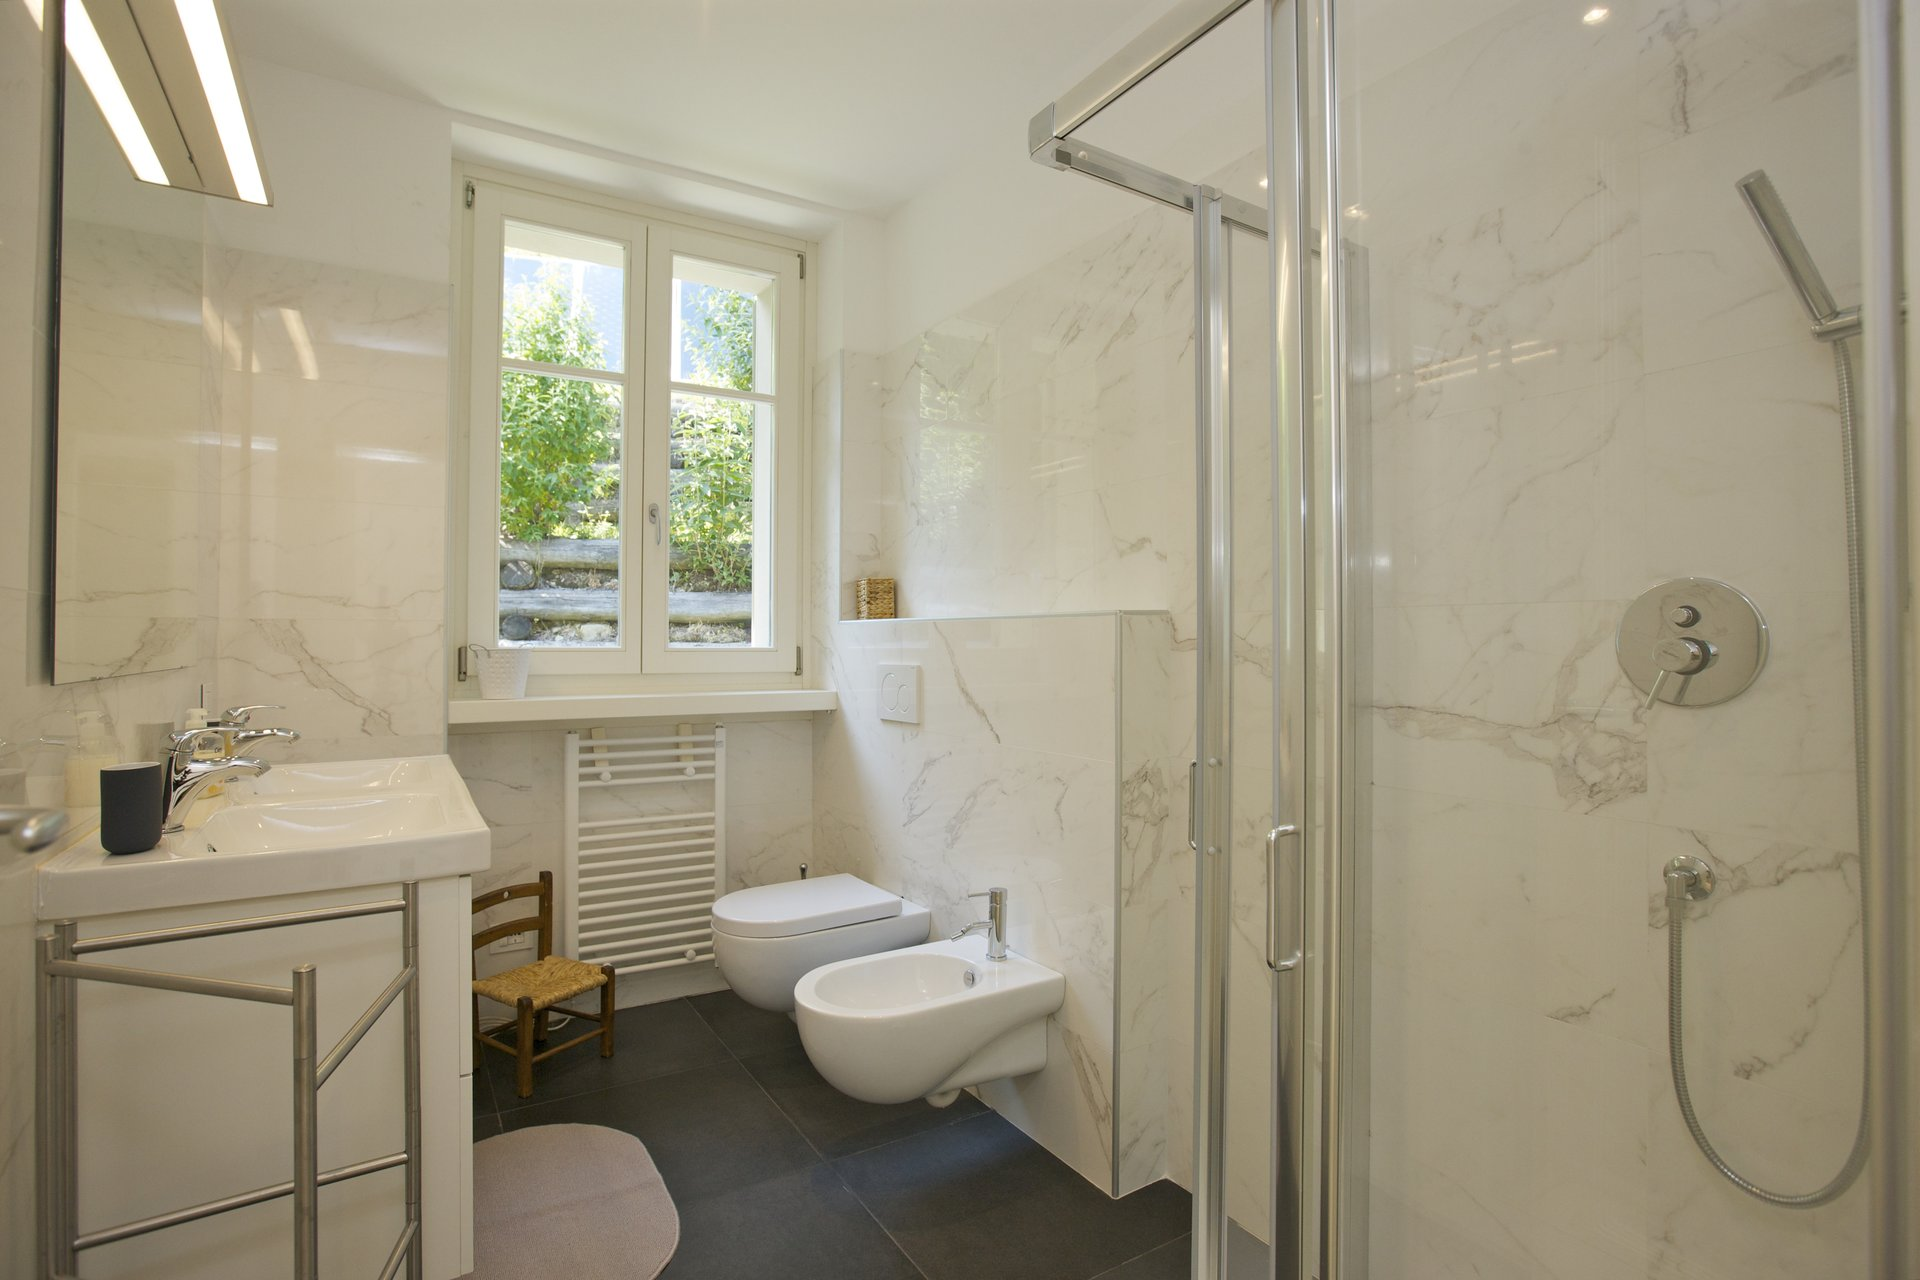 Luxury new villa for sale in Verbania - ensuite bathroom